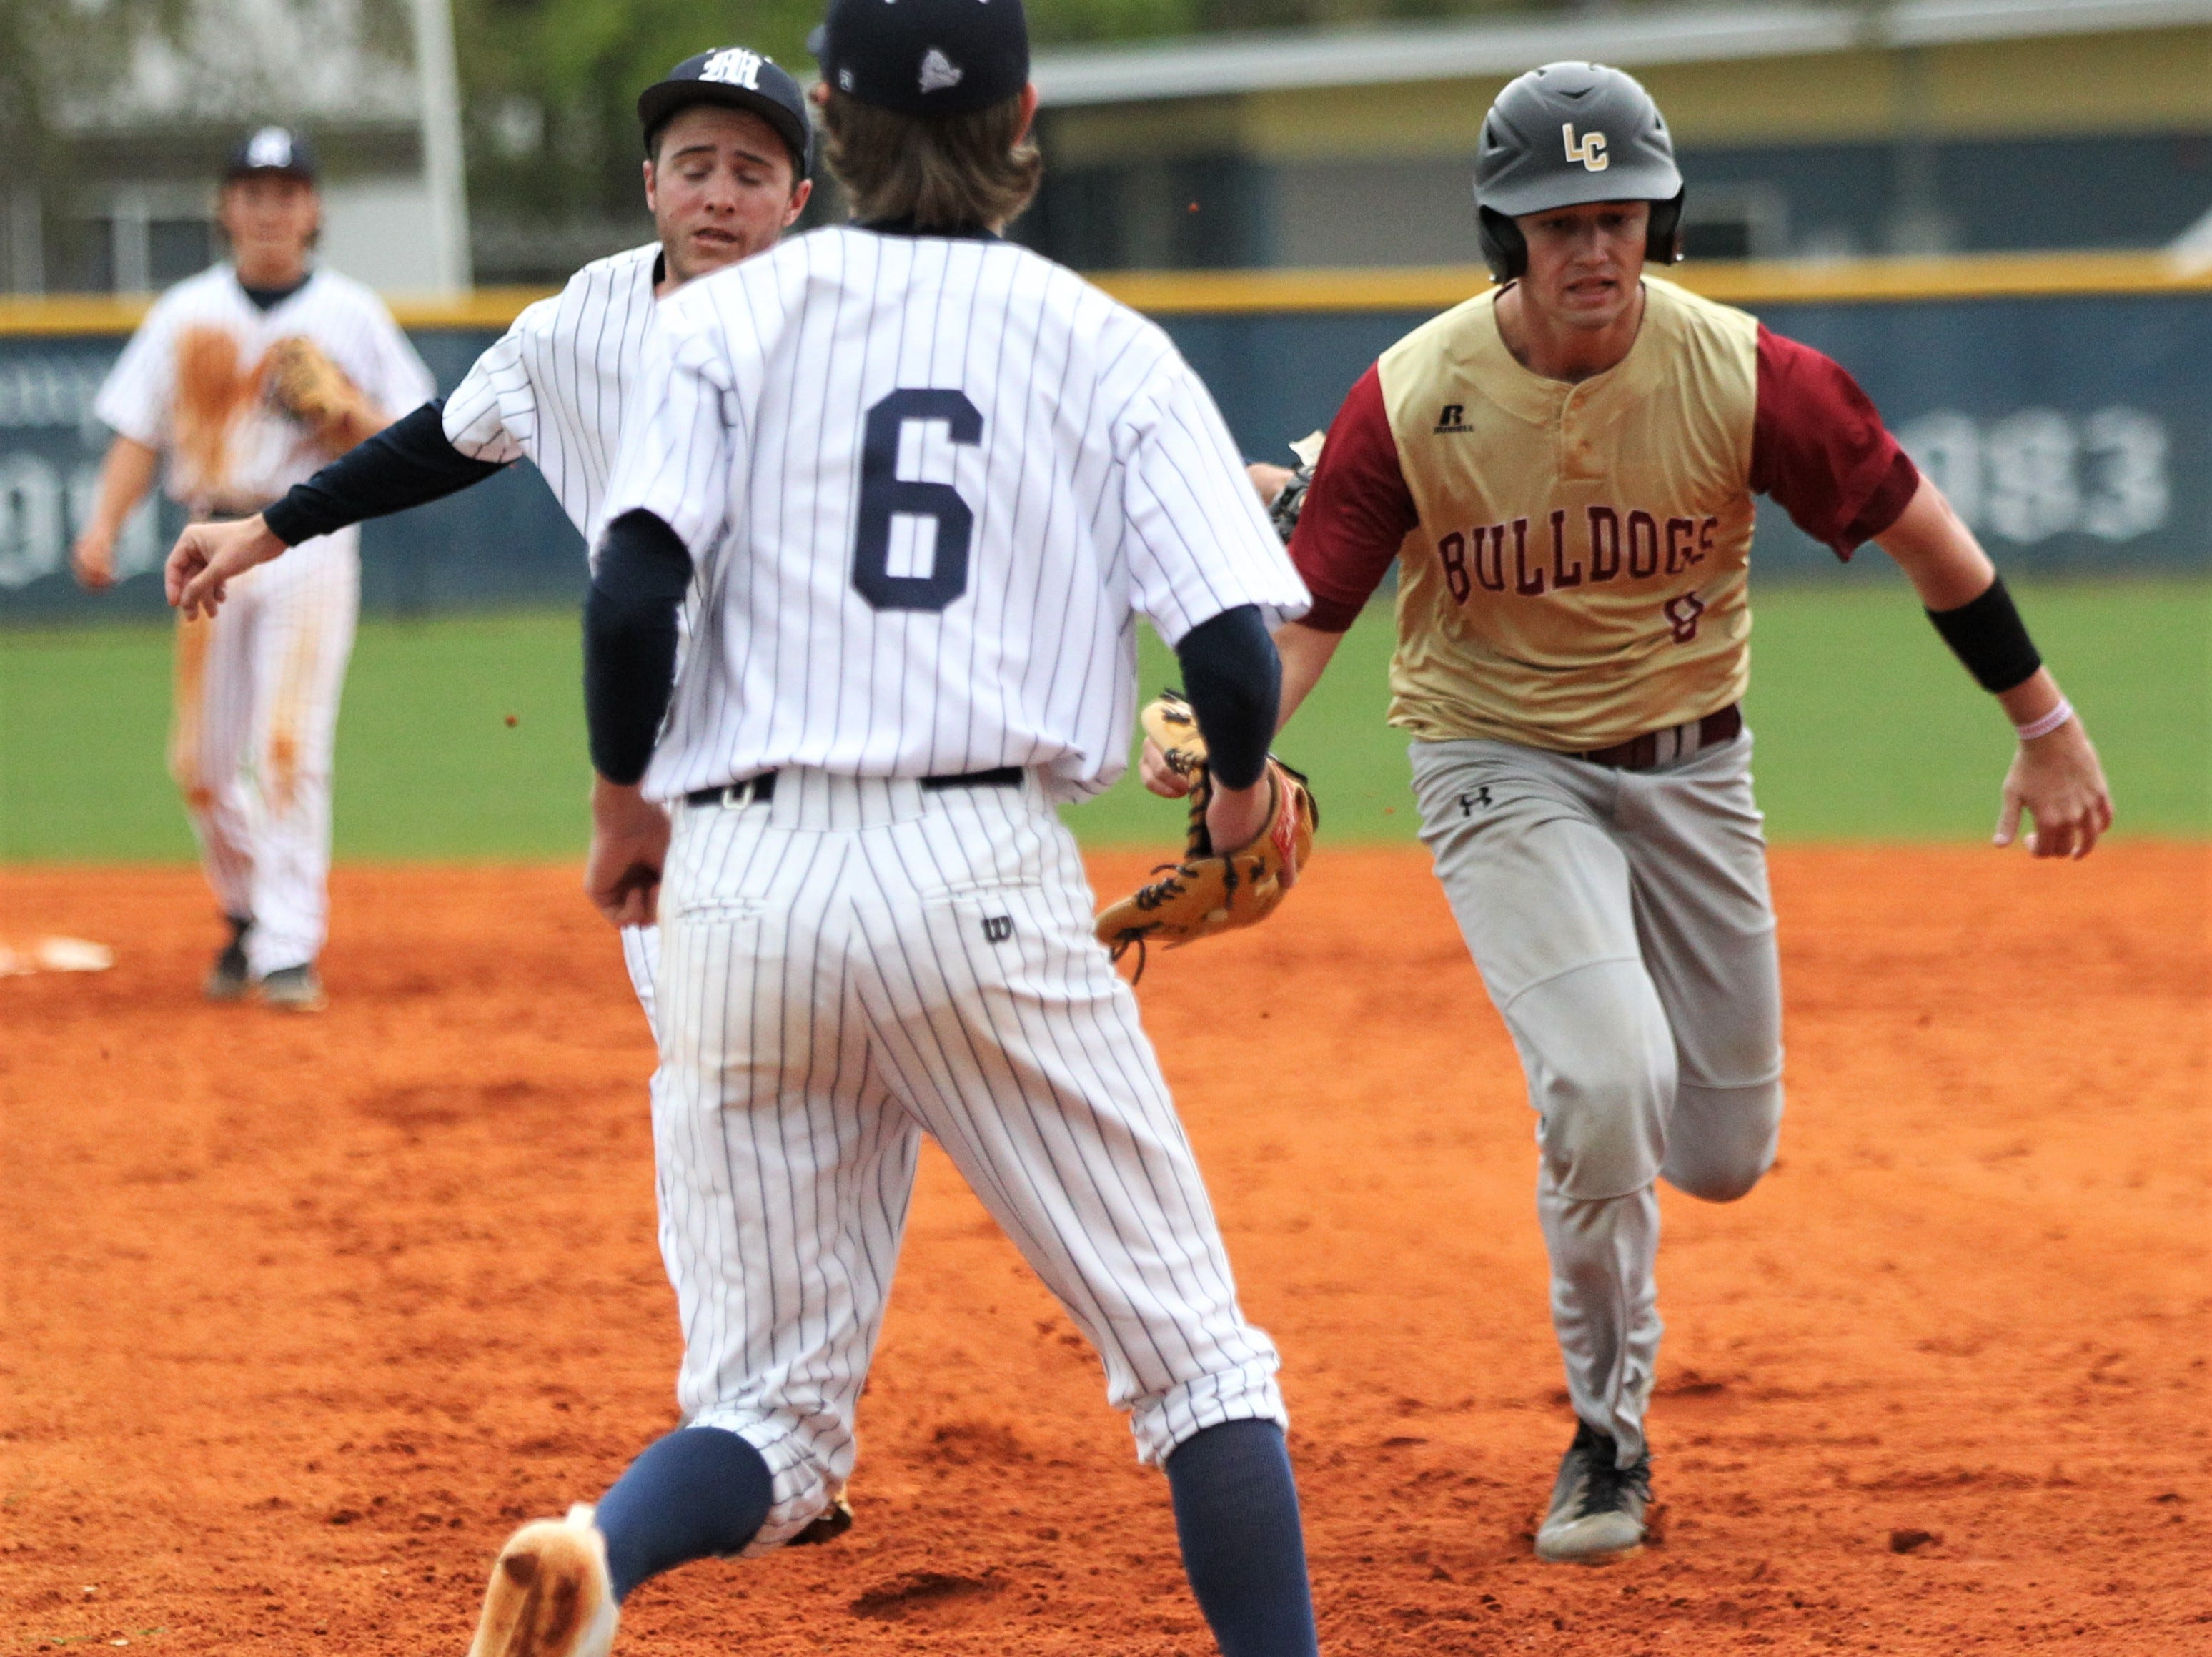 Maclay's Grant Harrison tags out Liberty County's Hunter Sanford in a rundown as Liberty County's baseball team went on the road to beat Maclay 8-2 on Saturday, March 16, 2019. The Bulldogs played their first game following their head coach Corey Crum's tragic death six days ago.